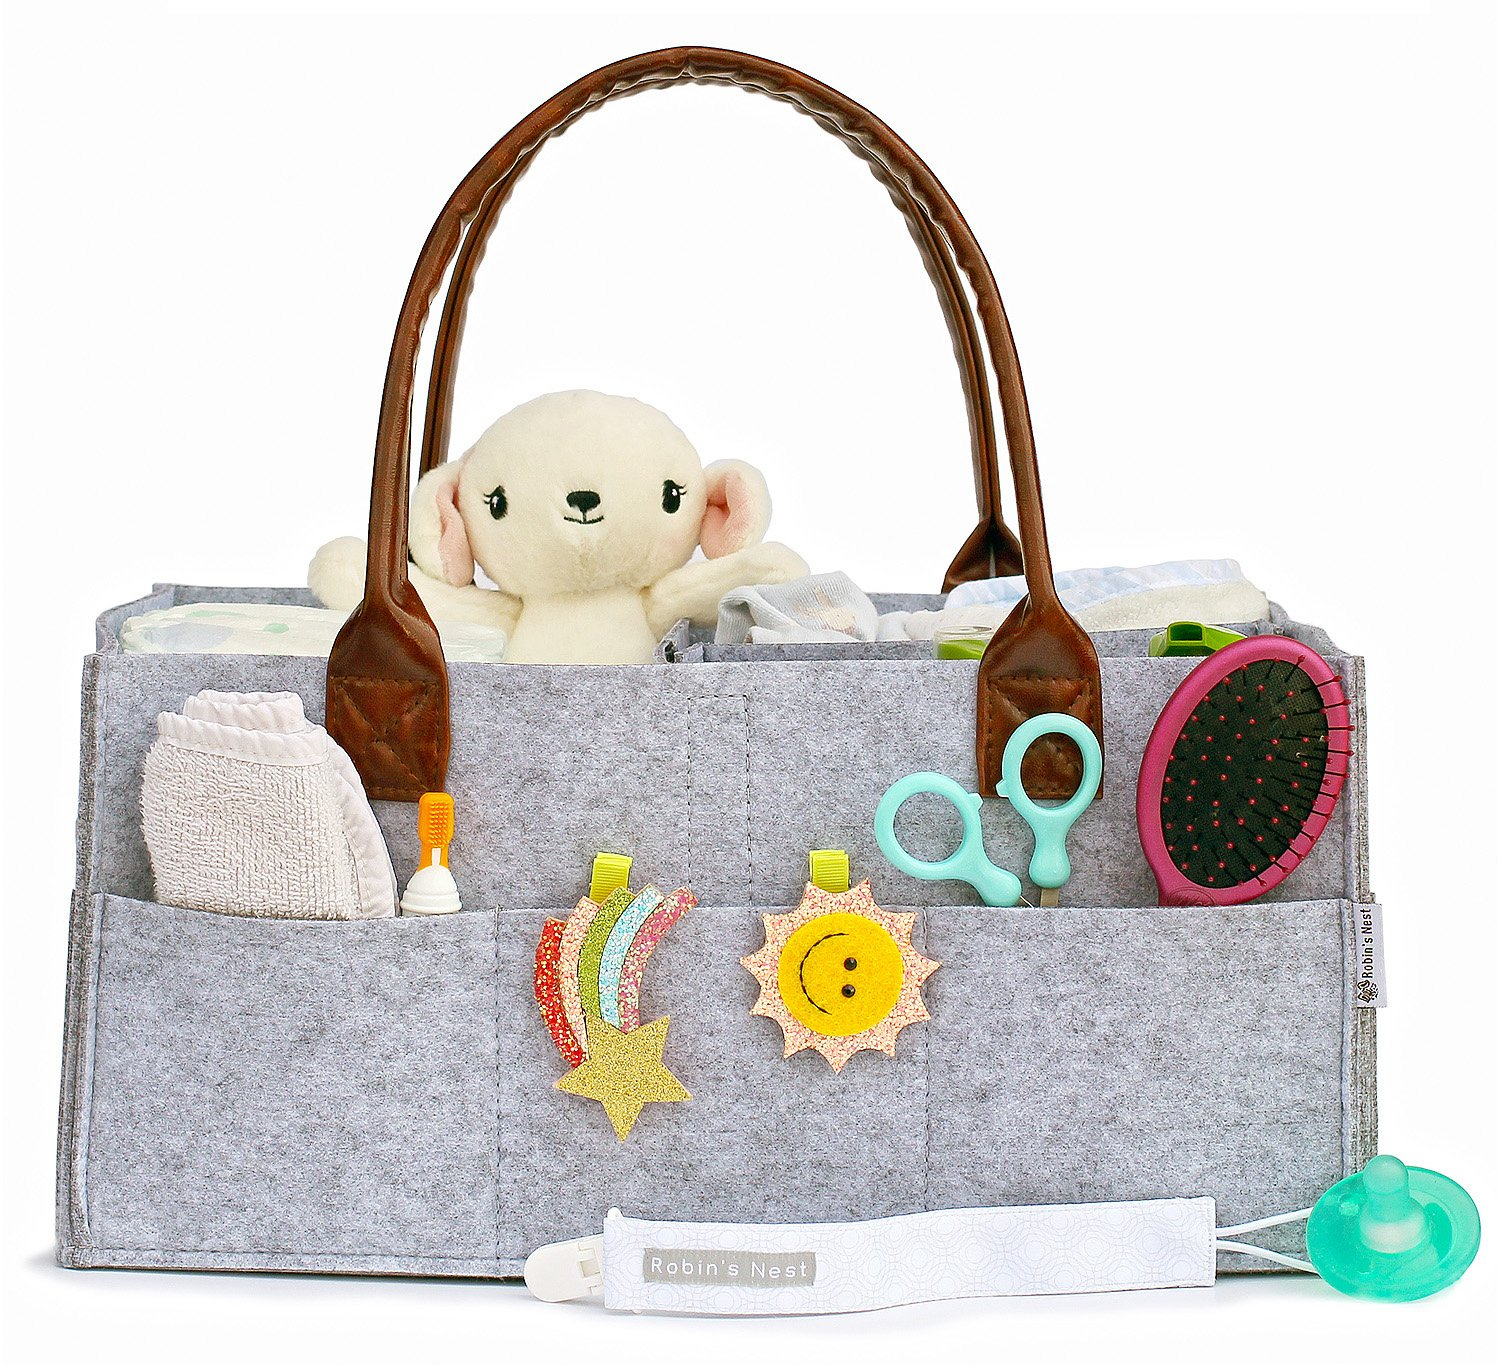 Baby Diaper Caddy & FREE Pacifier Clip | Nursery Changing Table Storage Bin | Portable Car Organizer for Diapers & Wipes | Art Supply Tote bag Aegie Company